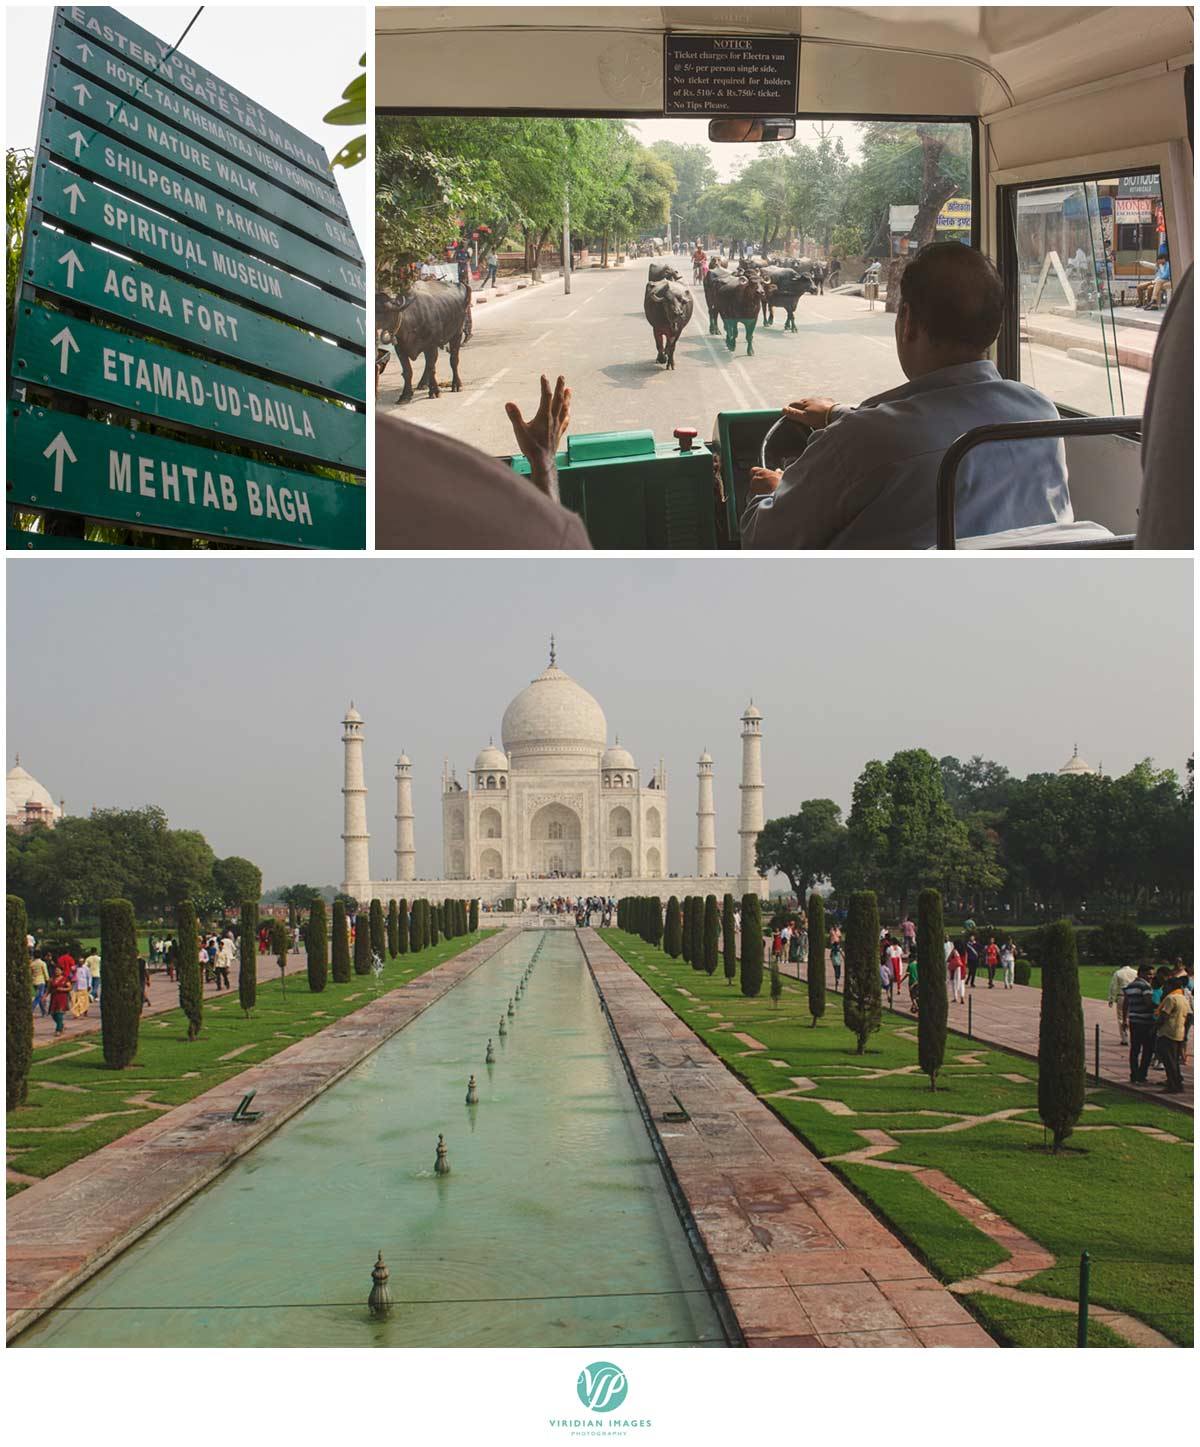 India_Taj_Mahal_Agra_Fort_Viridian_Images_photo_23